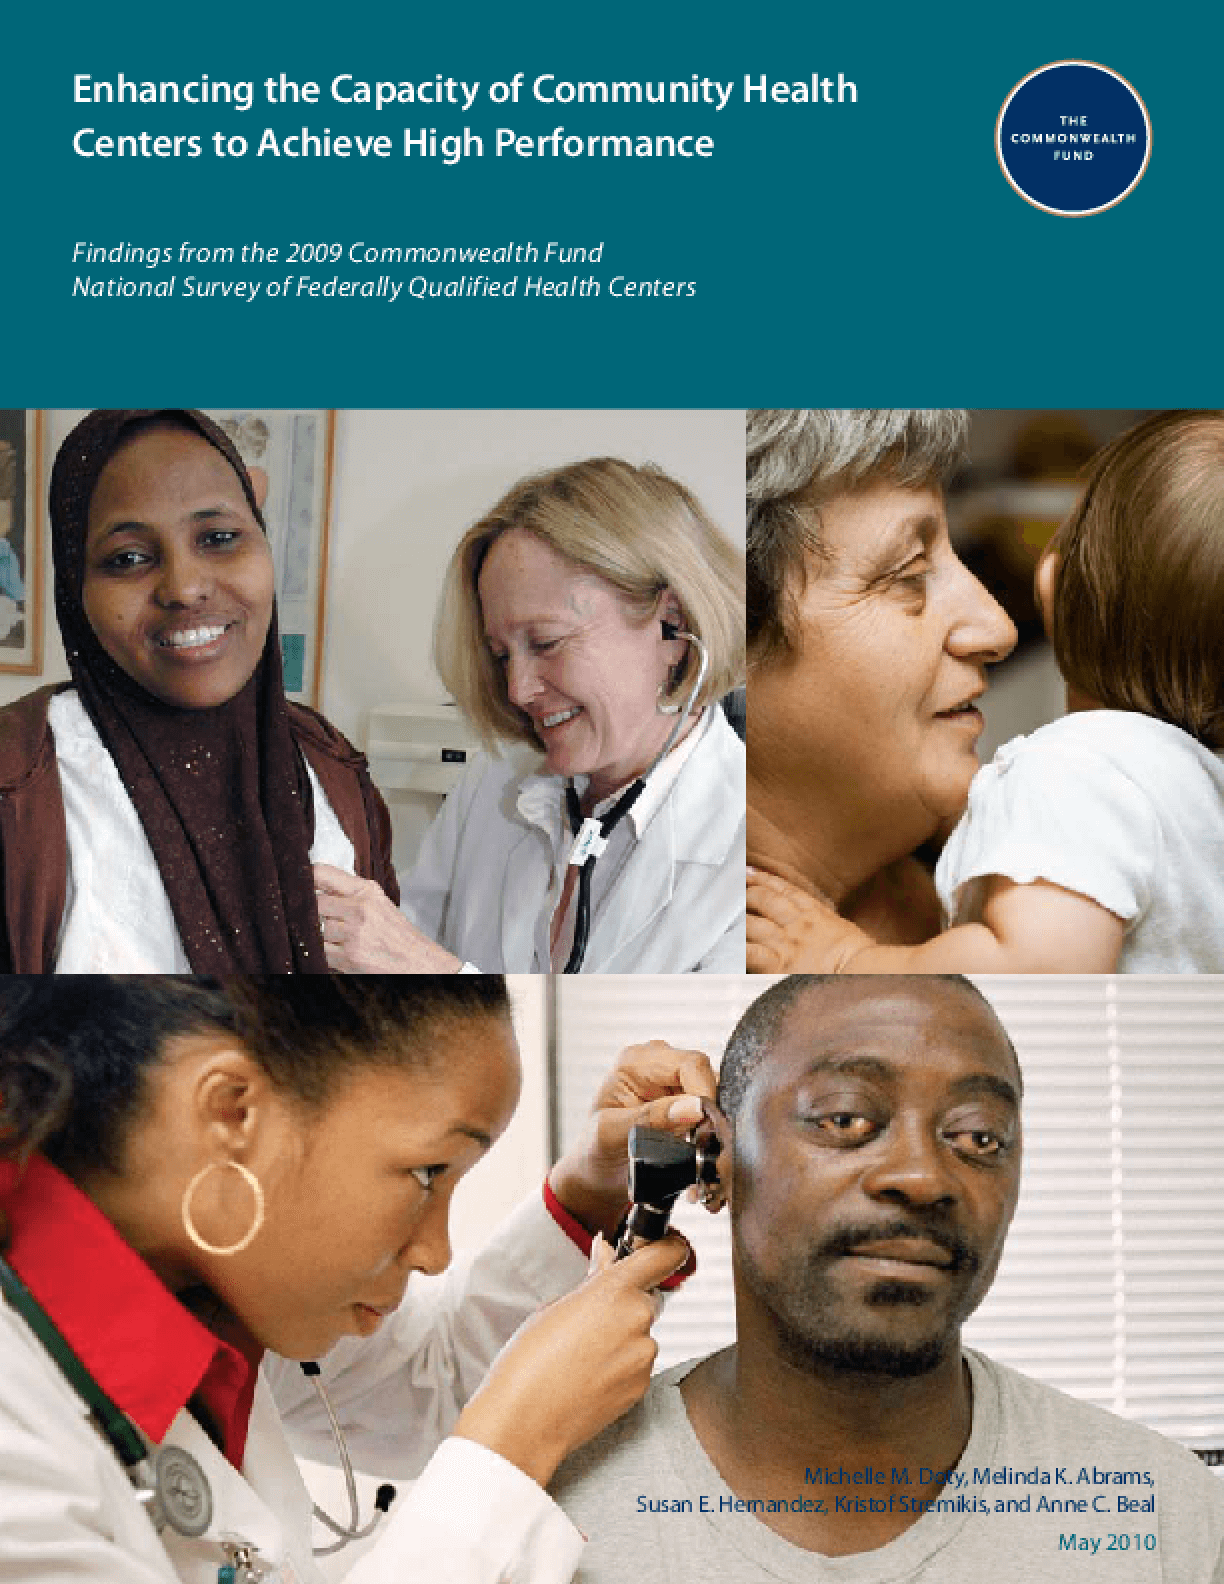 Enhancing the Capacity of Community Health Centers to Achieve High Performance